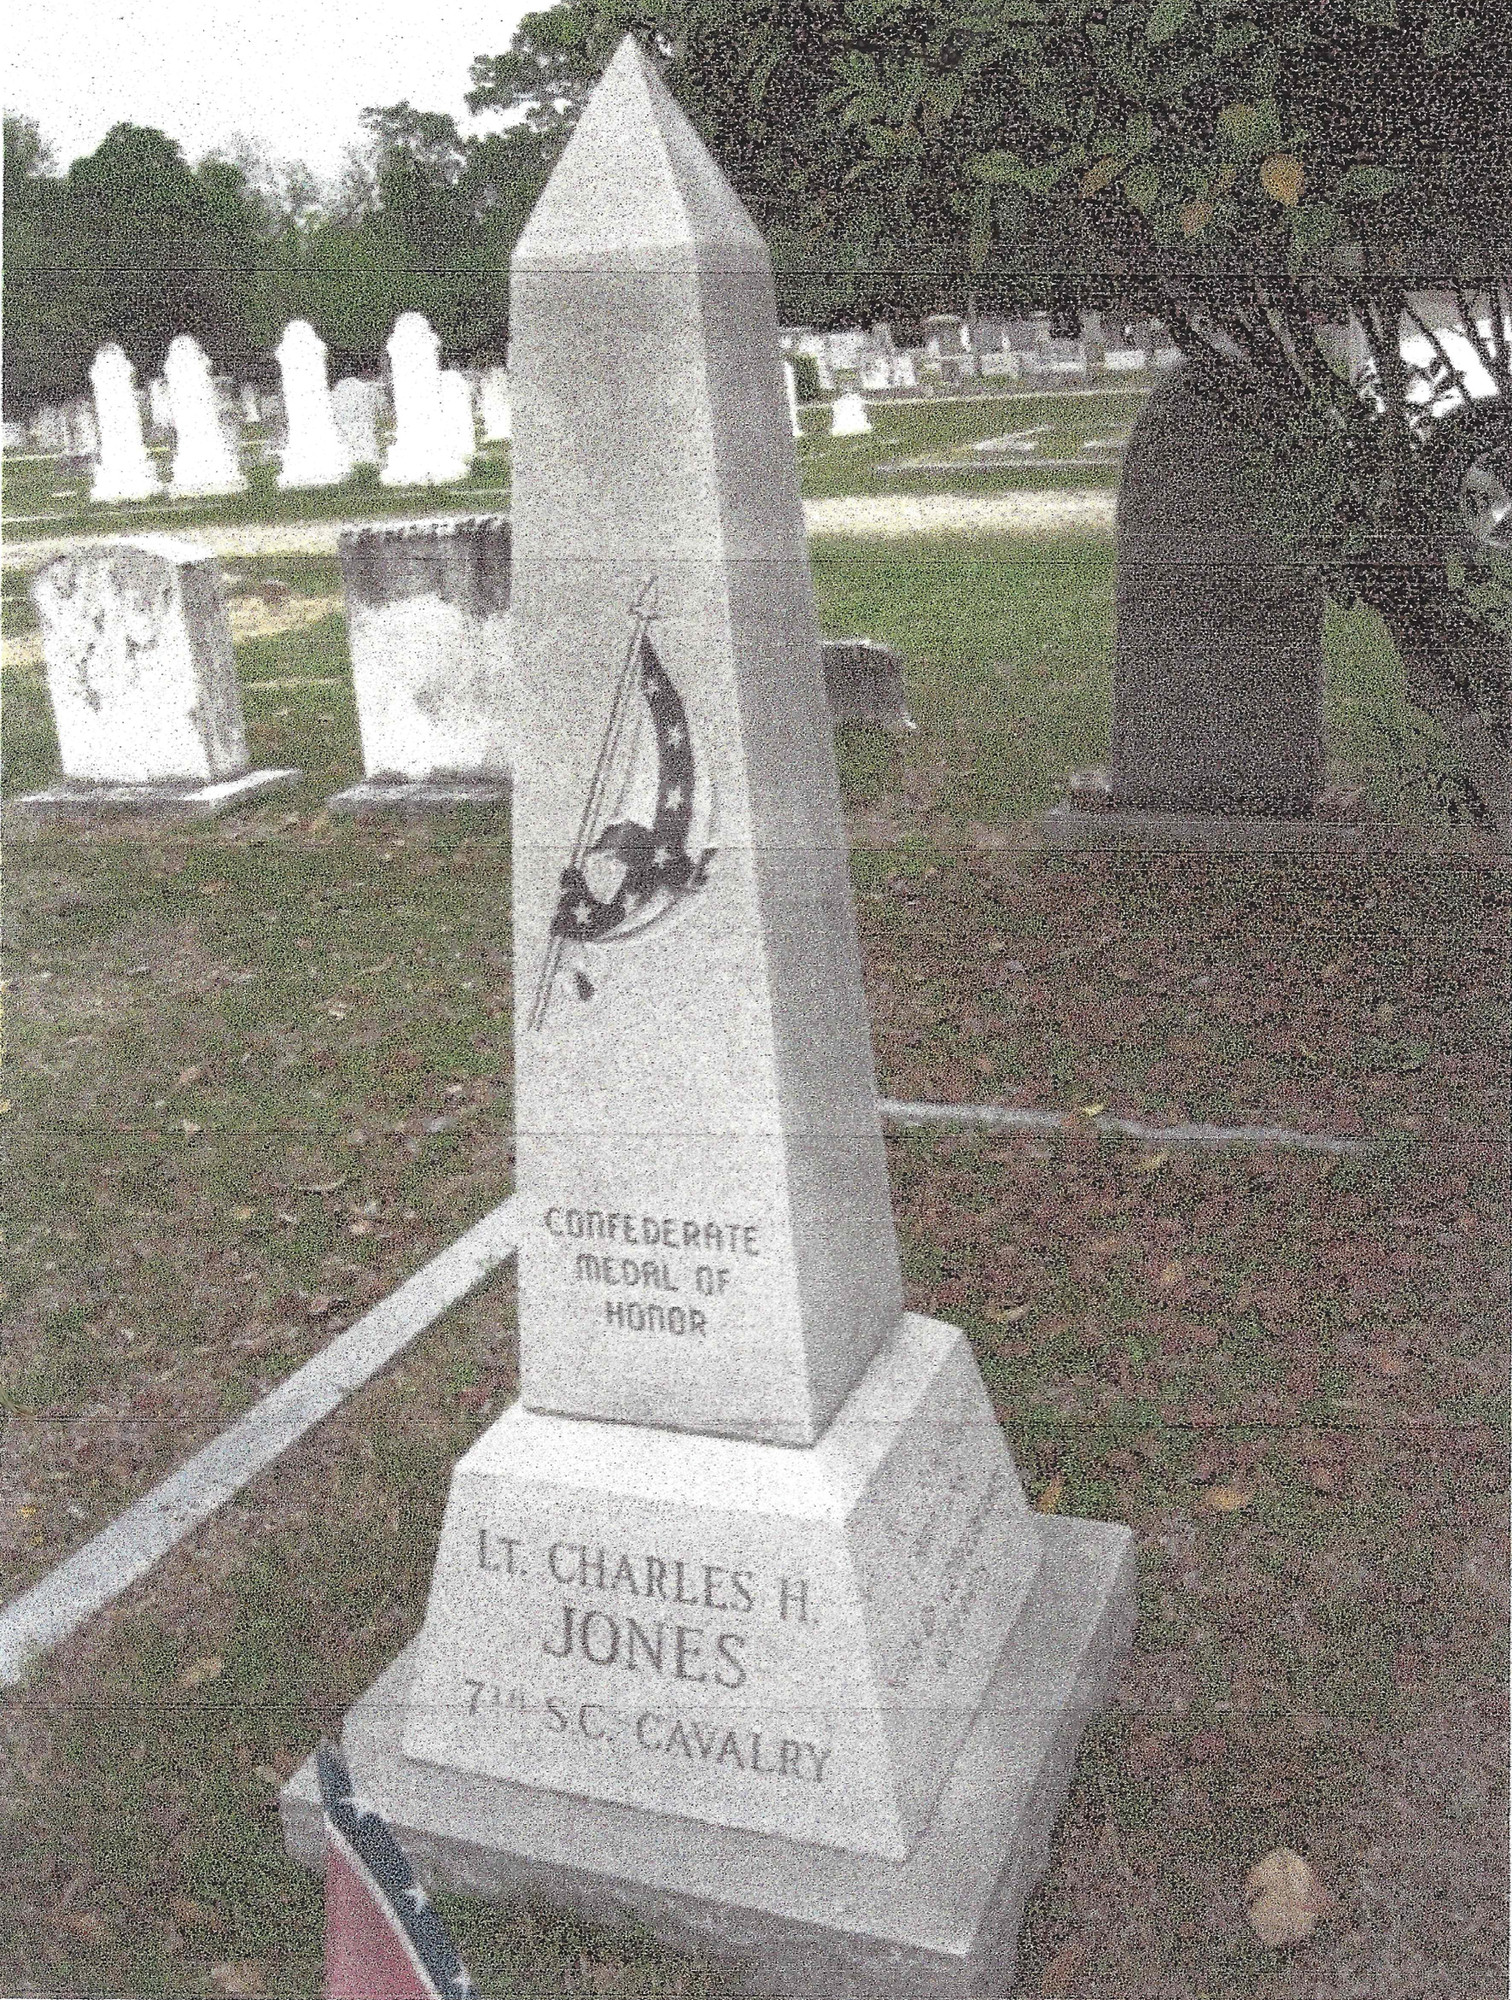 PHOTO PROVIDED A monument to Lt. Charles H. Jones recognizes him as a recipient of the Confederate Medal of Honor.